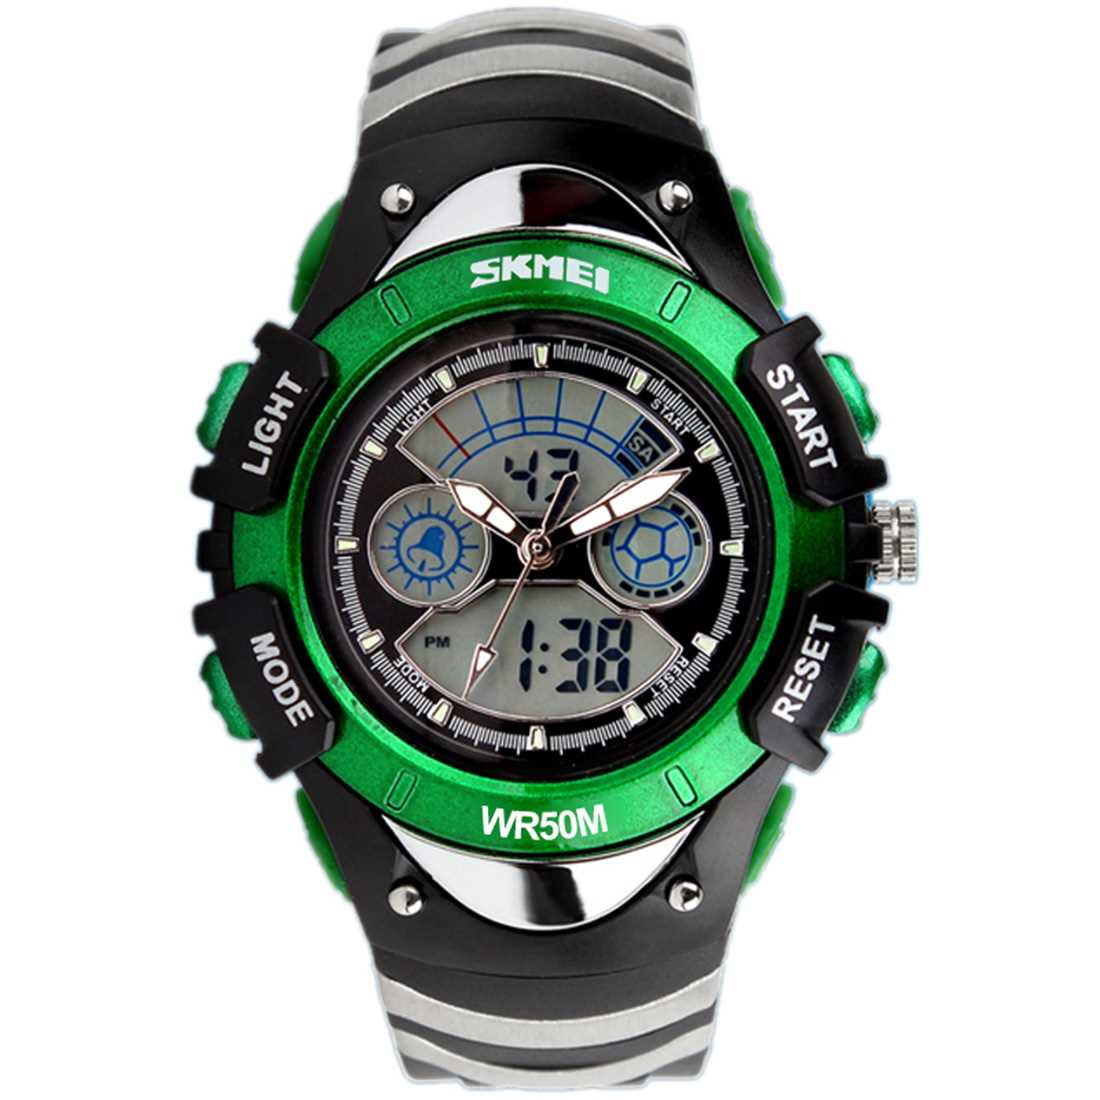 [ London ] SKM 0998 Children Sport Watch Dual Display Waterproof Watch Green (Green) Malaysia